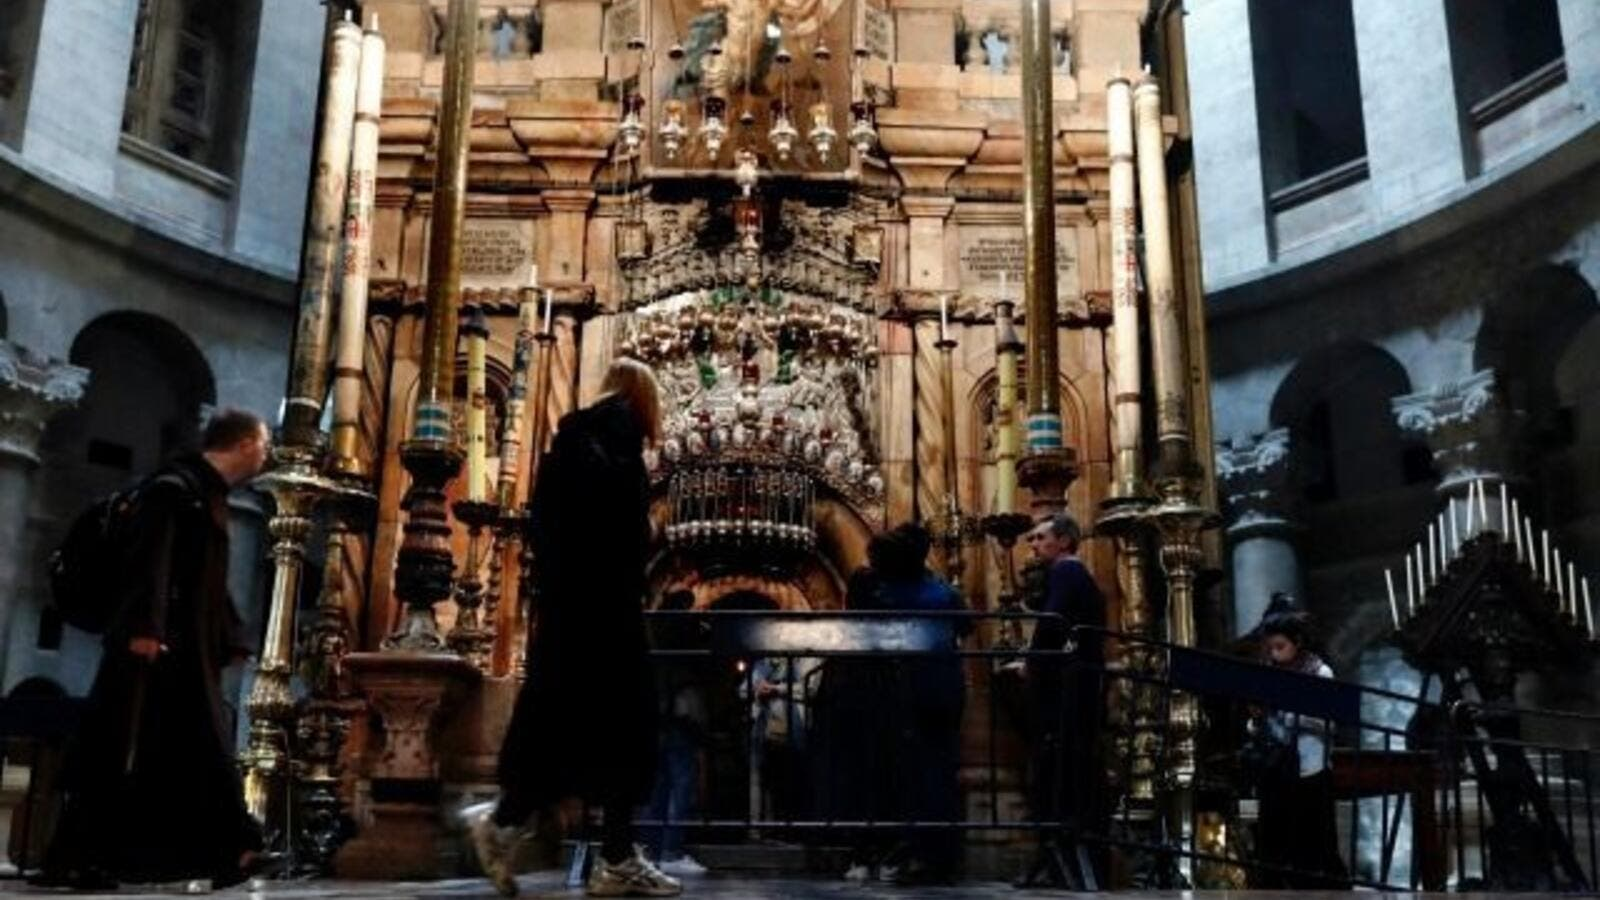 The tomb where Jesus is said to have been buried before his resurrection in Jerusalem's Church of the Holy Sepulchre (AFP/File Photo)